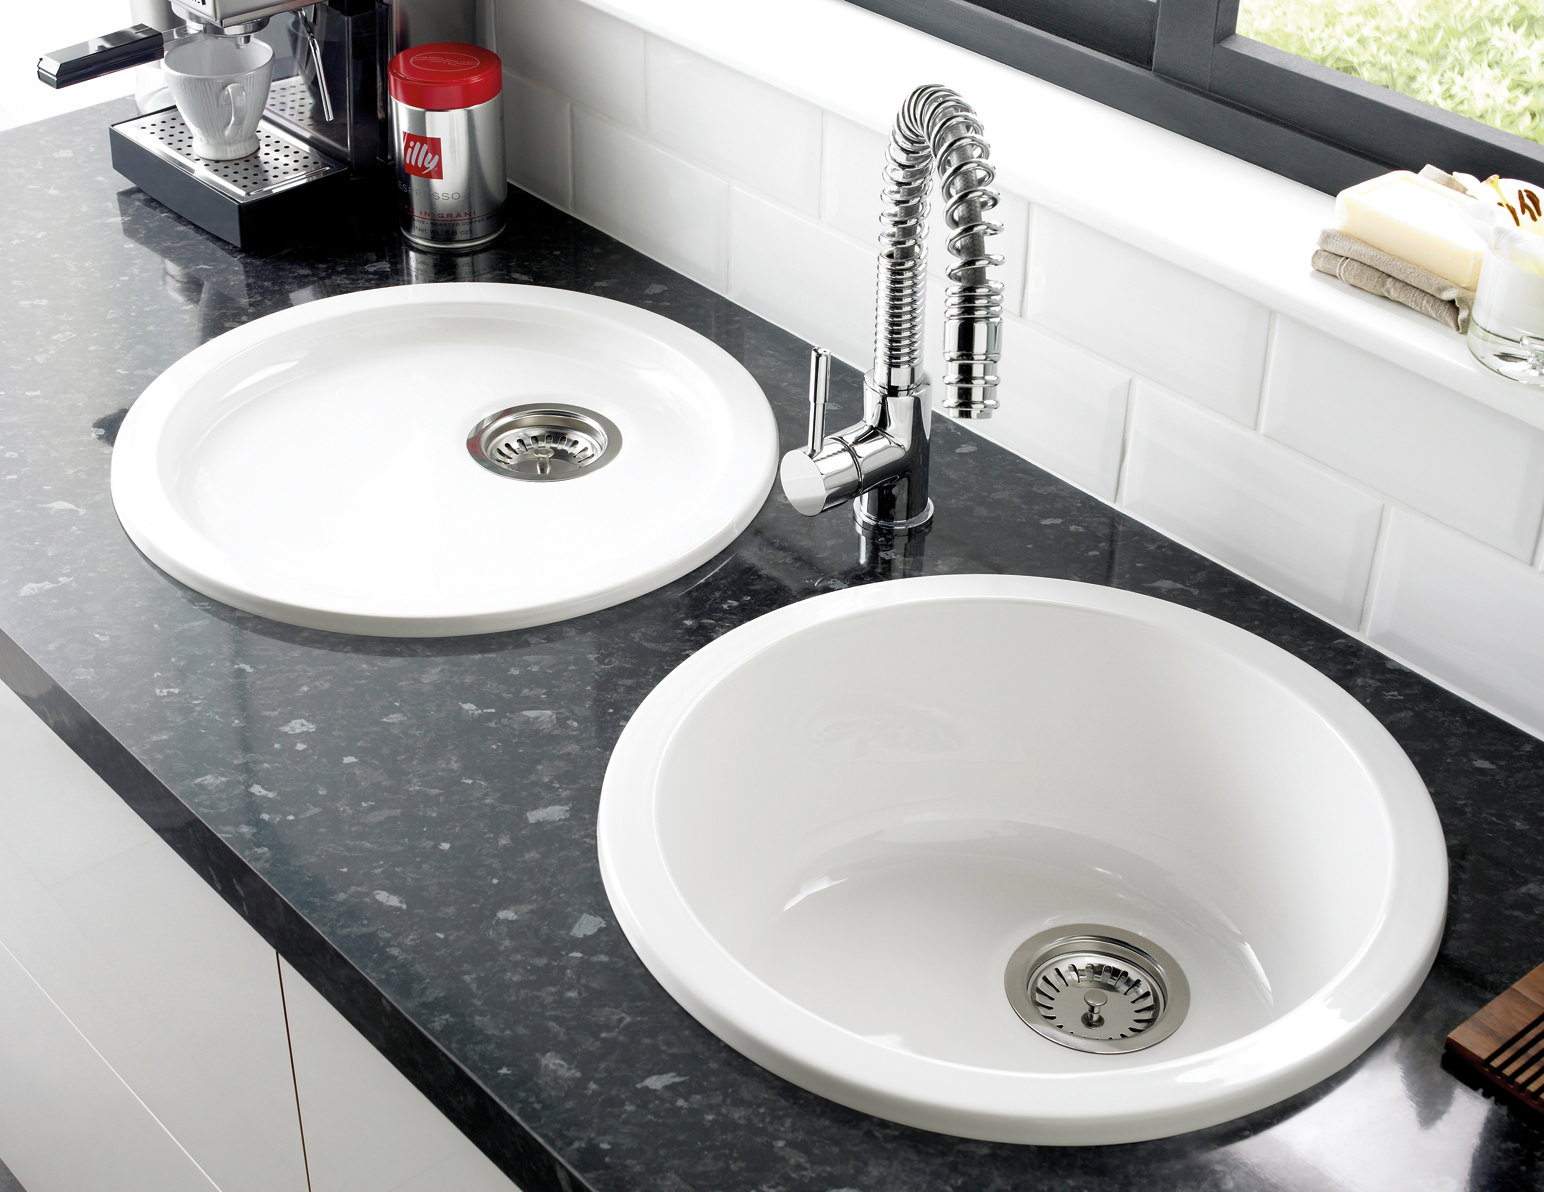 Astracast lincoln r1 460mm round bowl ceramic inset or undermount sink lnr1 - Evier ikea ceramique ...